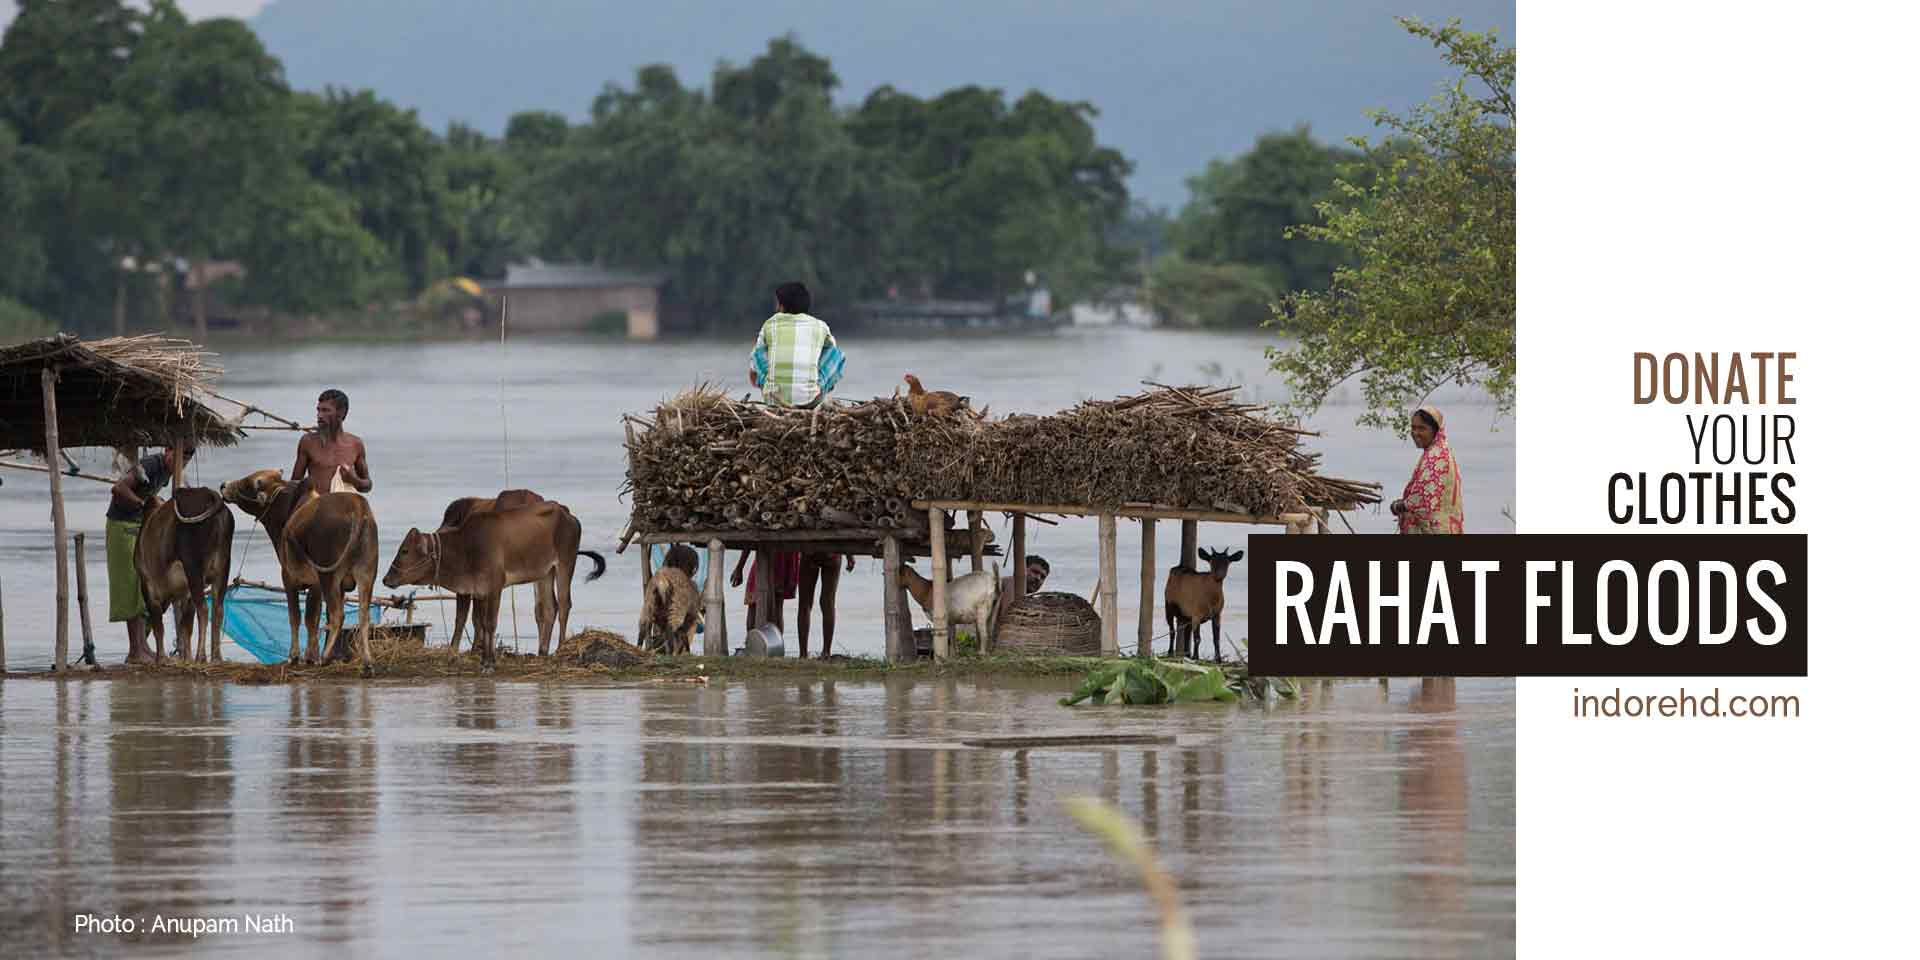 Rahat-Flood-Donations-Indore-IndoreHD